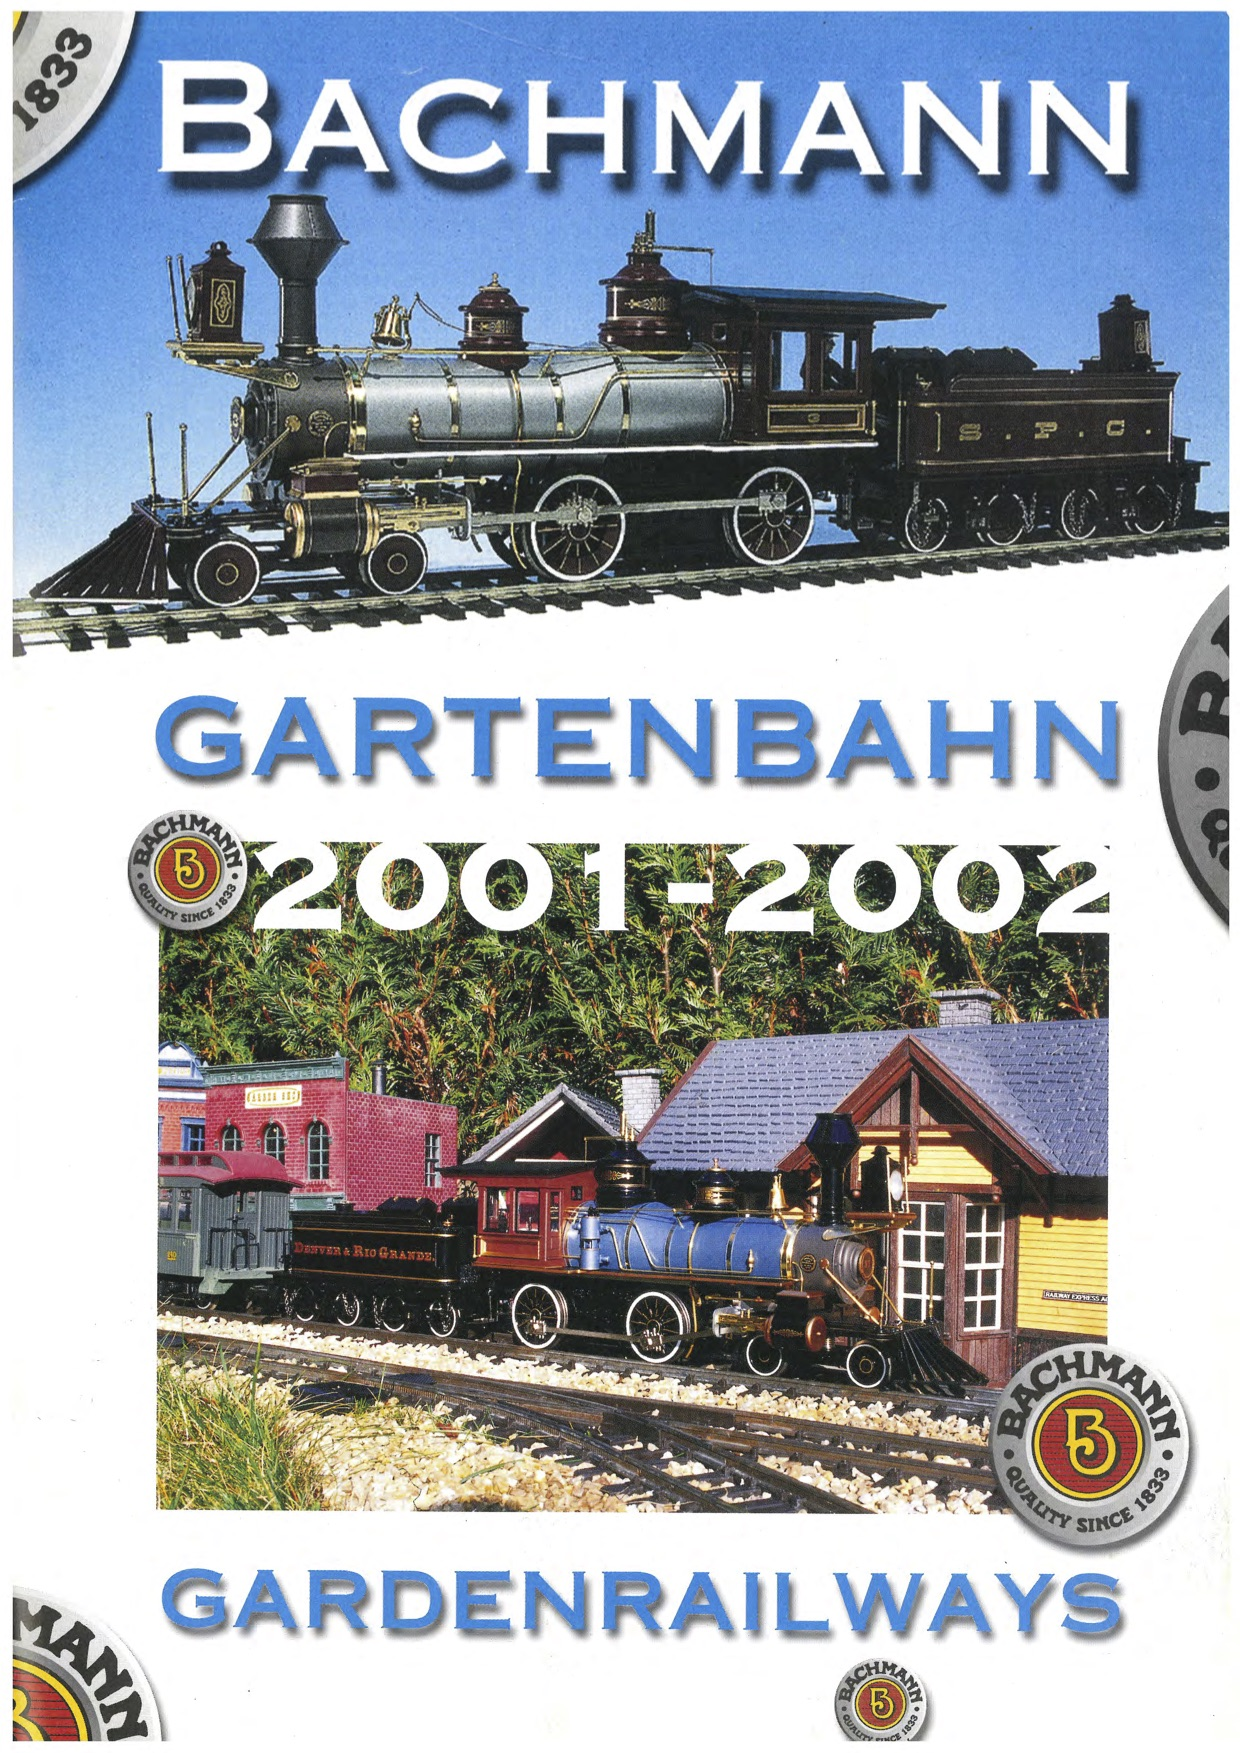 Bachmann Trains Katalog (Catalogue) 2001 - 2002